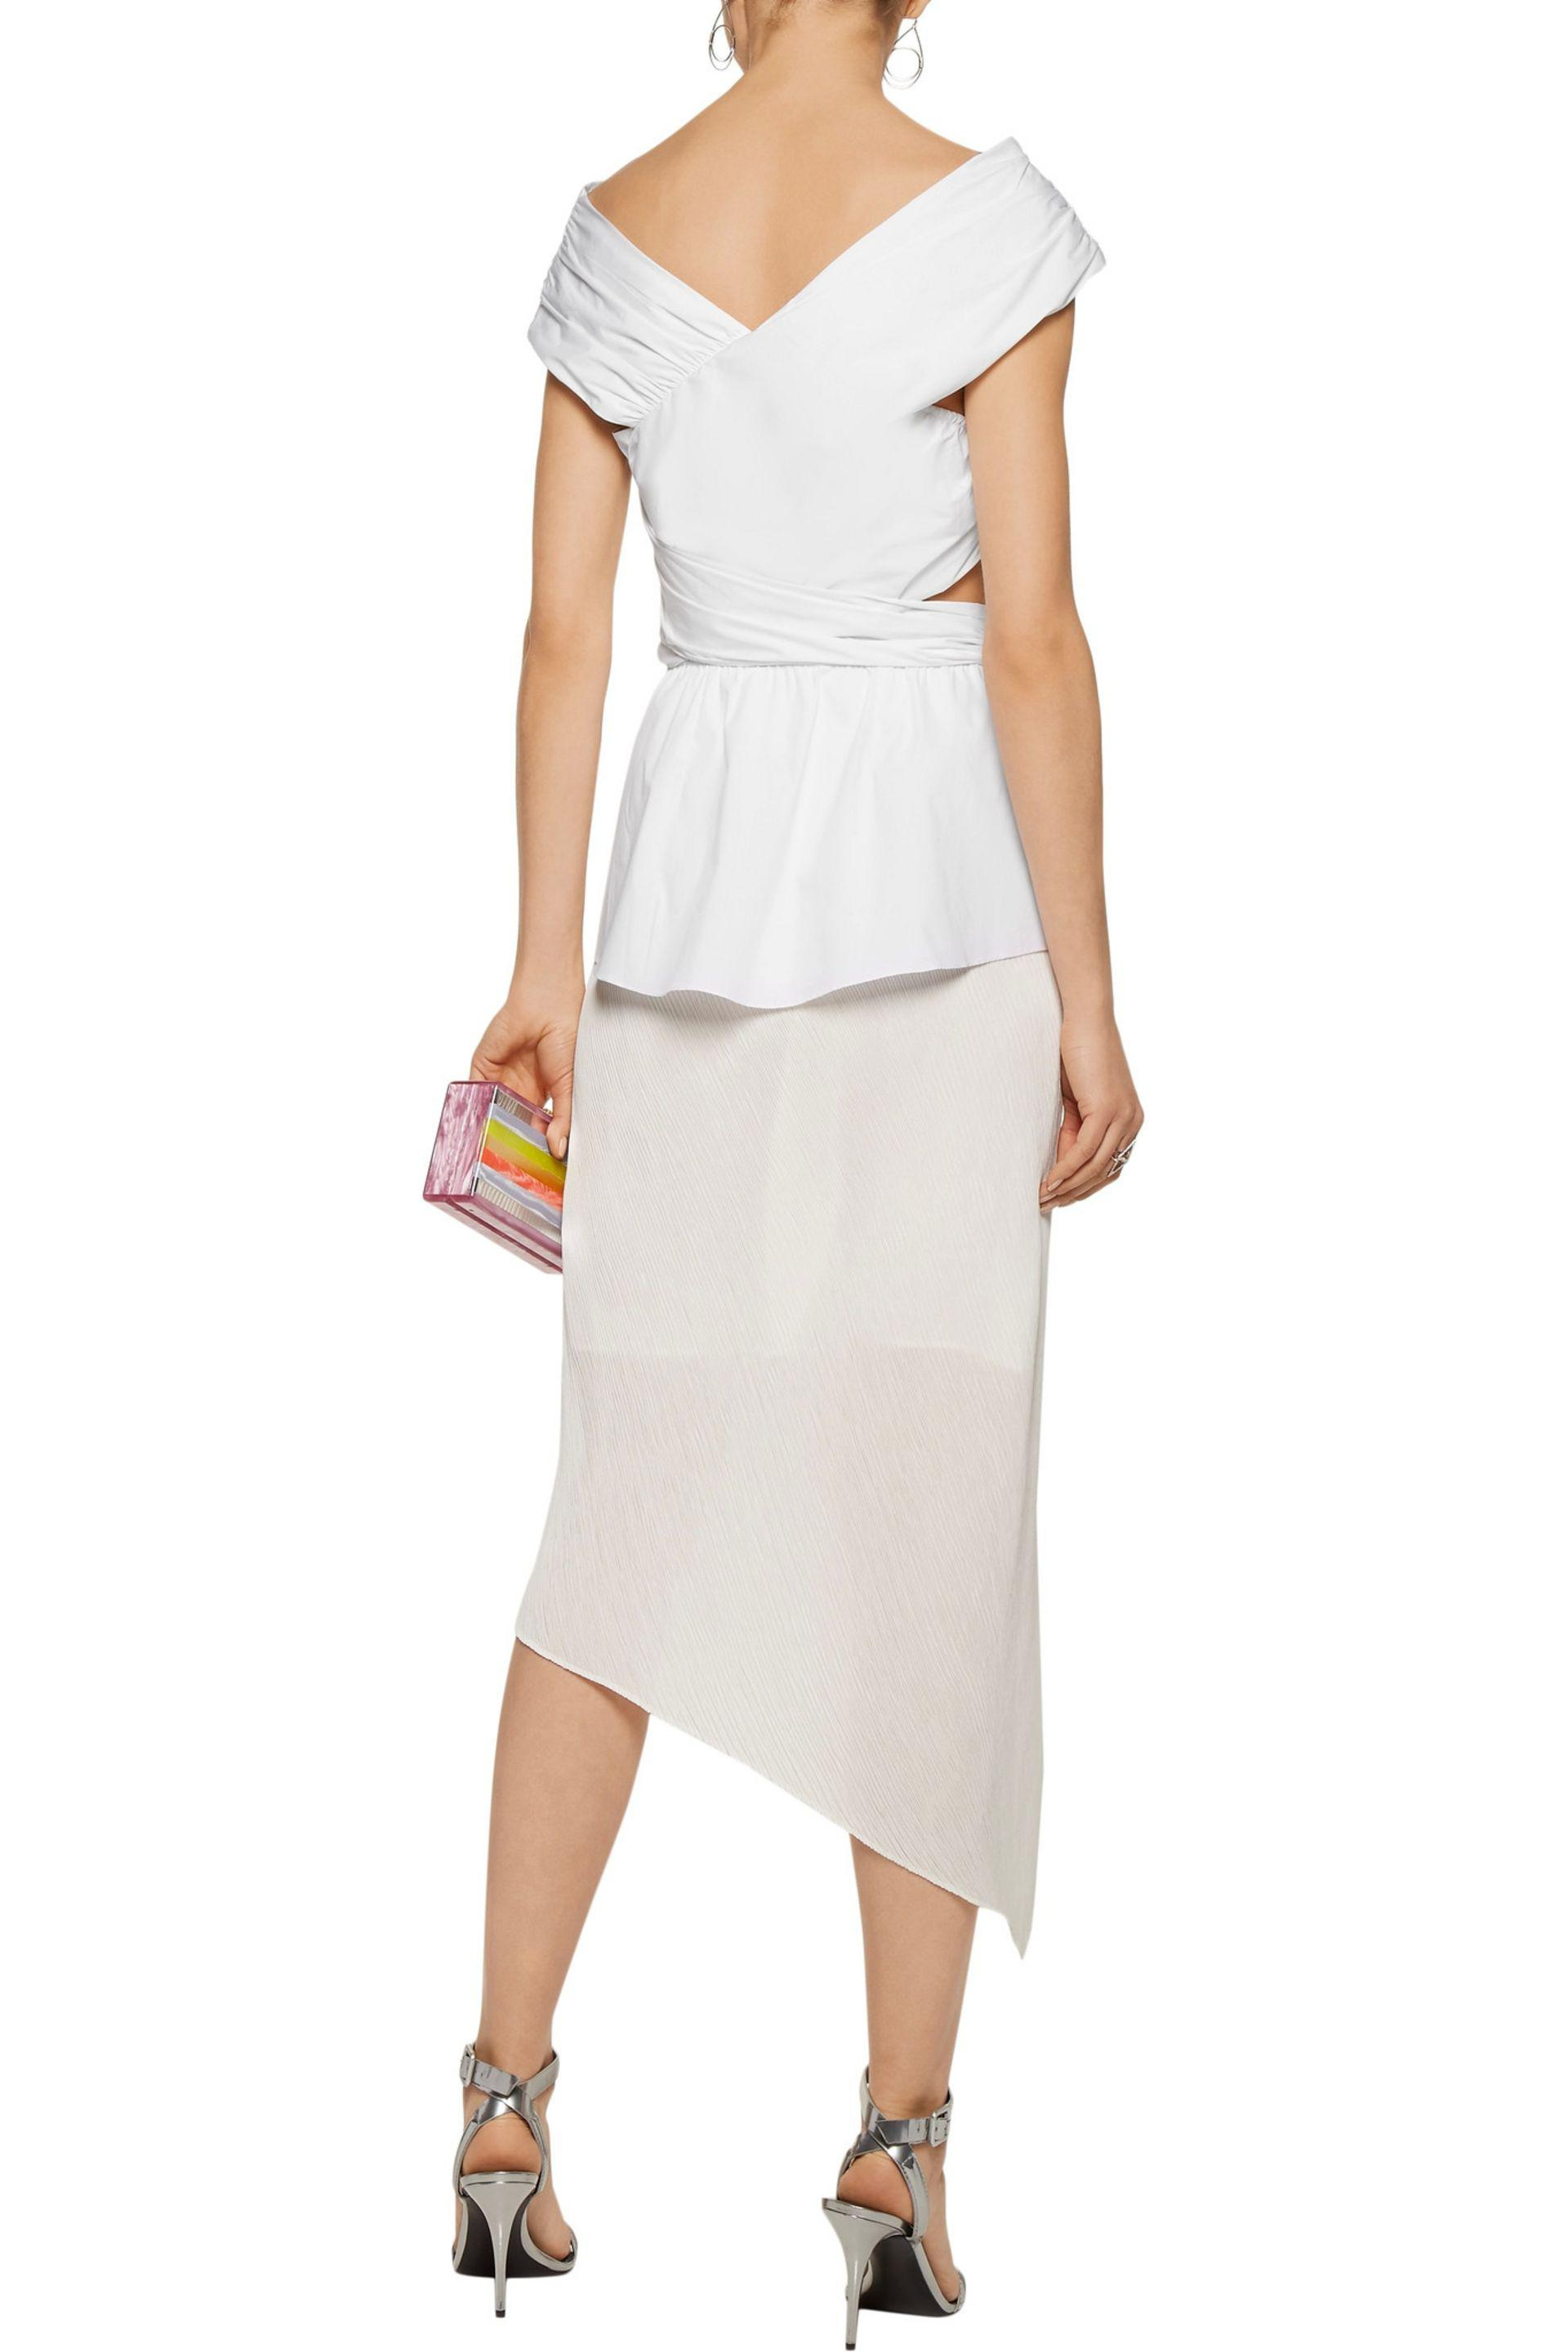 Tanya Taylor | White Phoebe Cutout Wrap-effect Cotton-blend Top | Lyst.  View Fullscreen